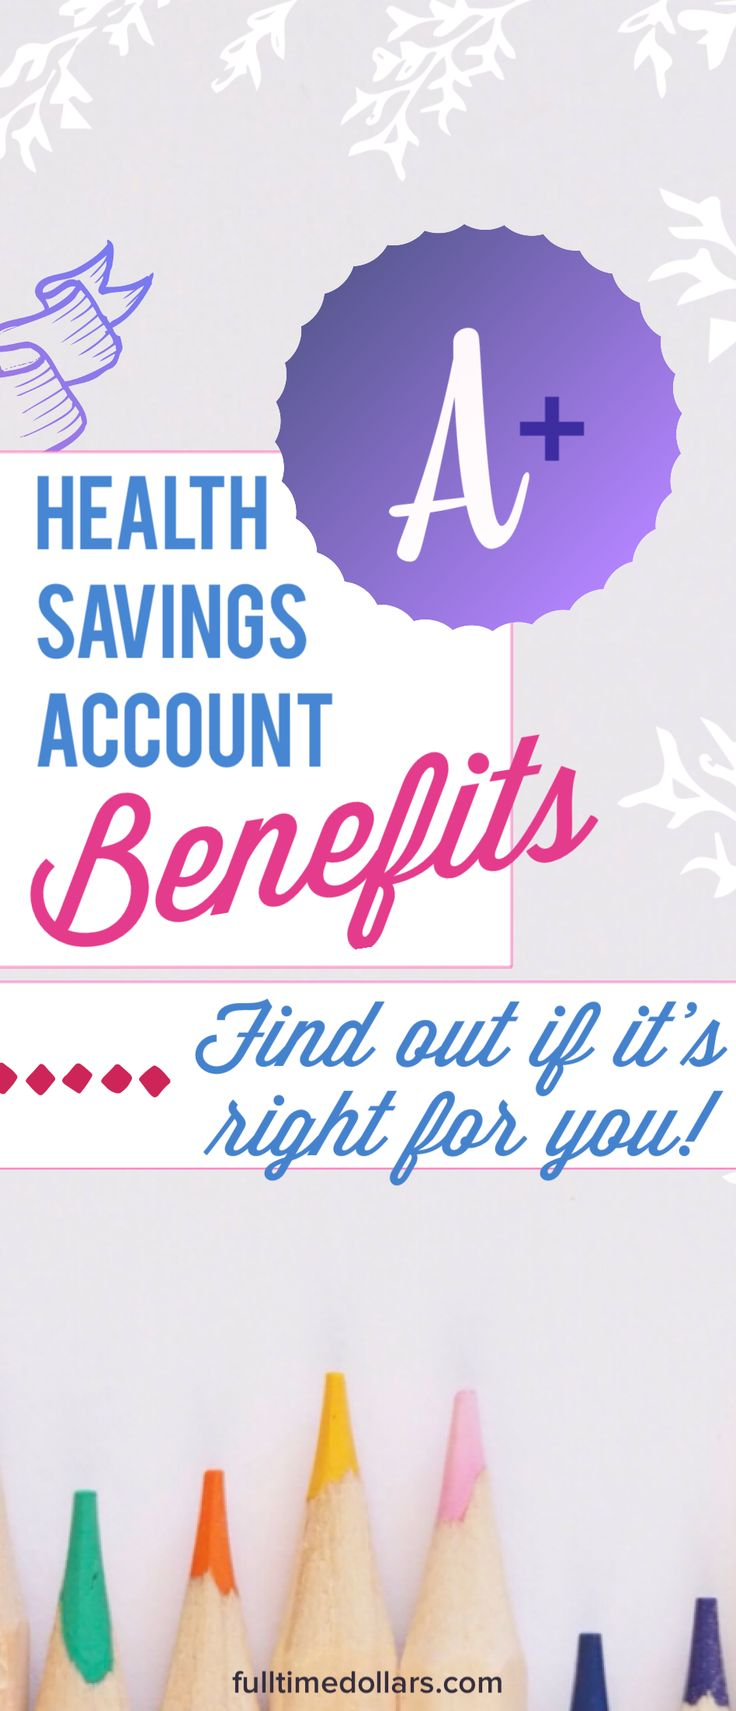 The health savings account (HSA) is a great account to use to help fund your healthcare, a high-deductible health plan is used in conjunction with this... | Health Savings Account (HSA) | HSA Investing | Personal Finance | High-deductible health plan (HDHP) |